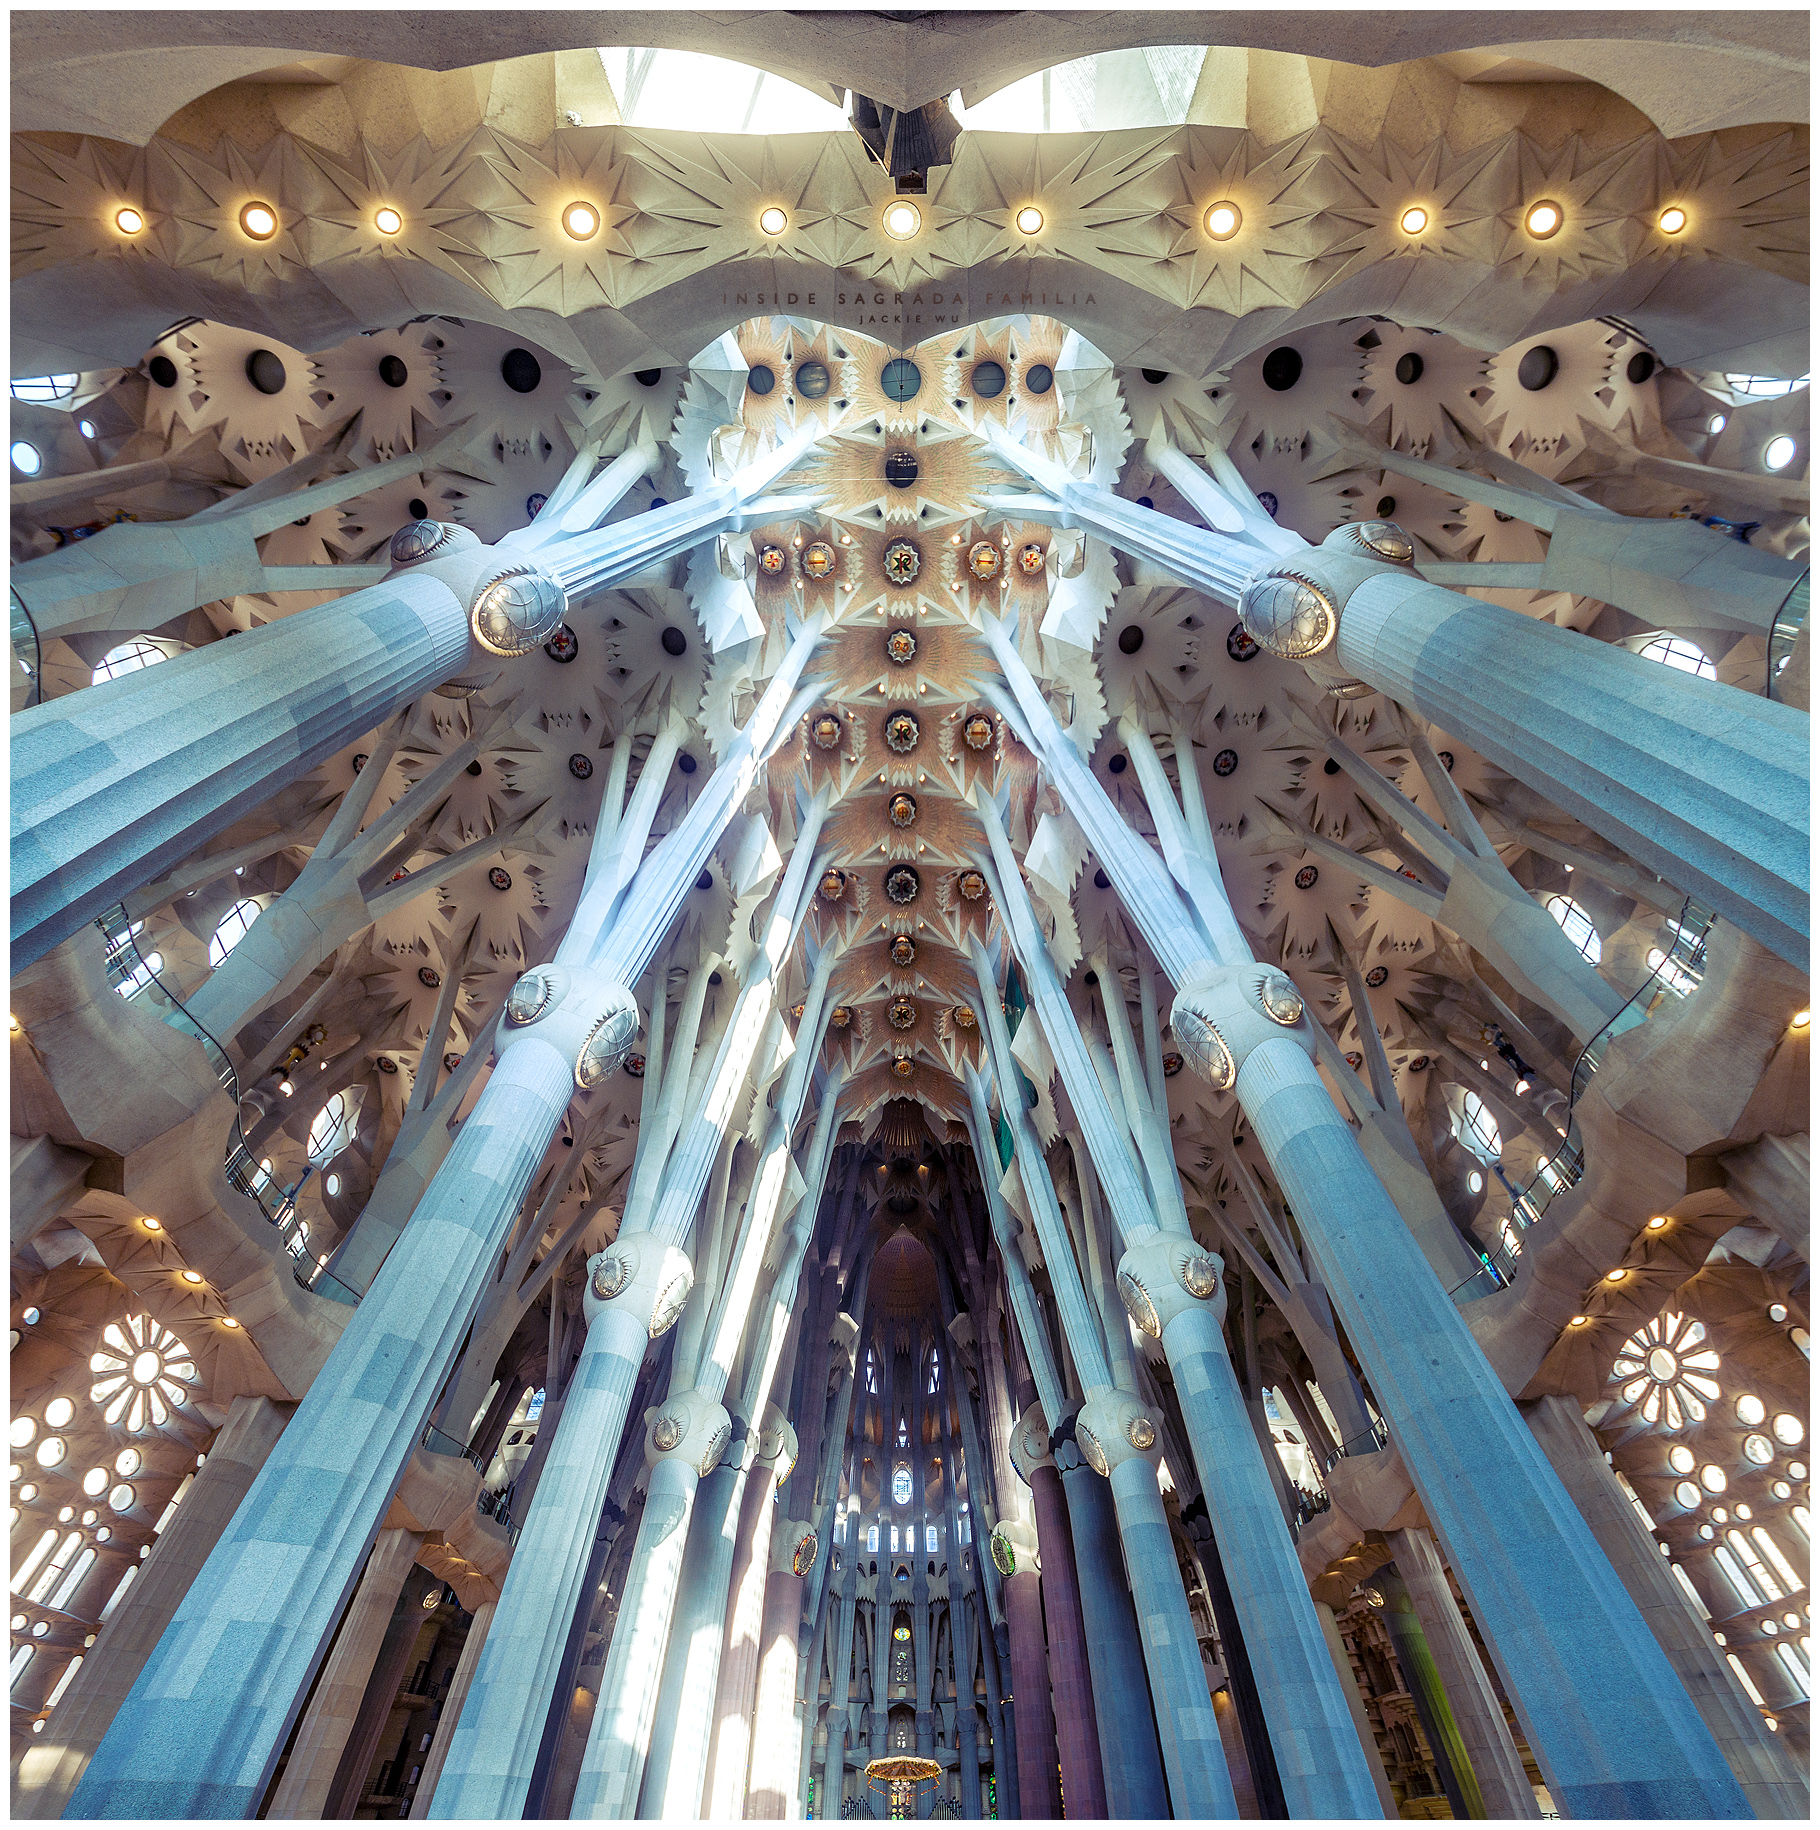 Inside Sagrada Familia by geckokid